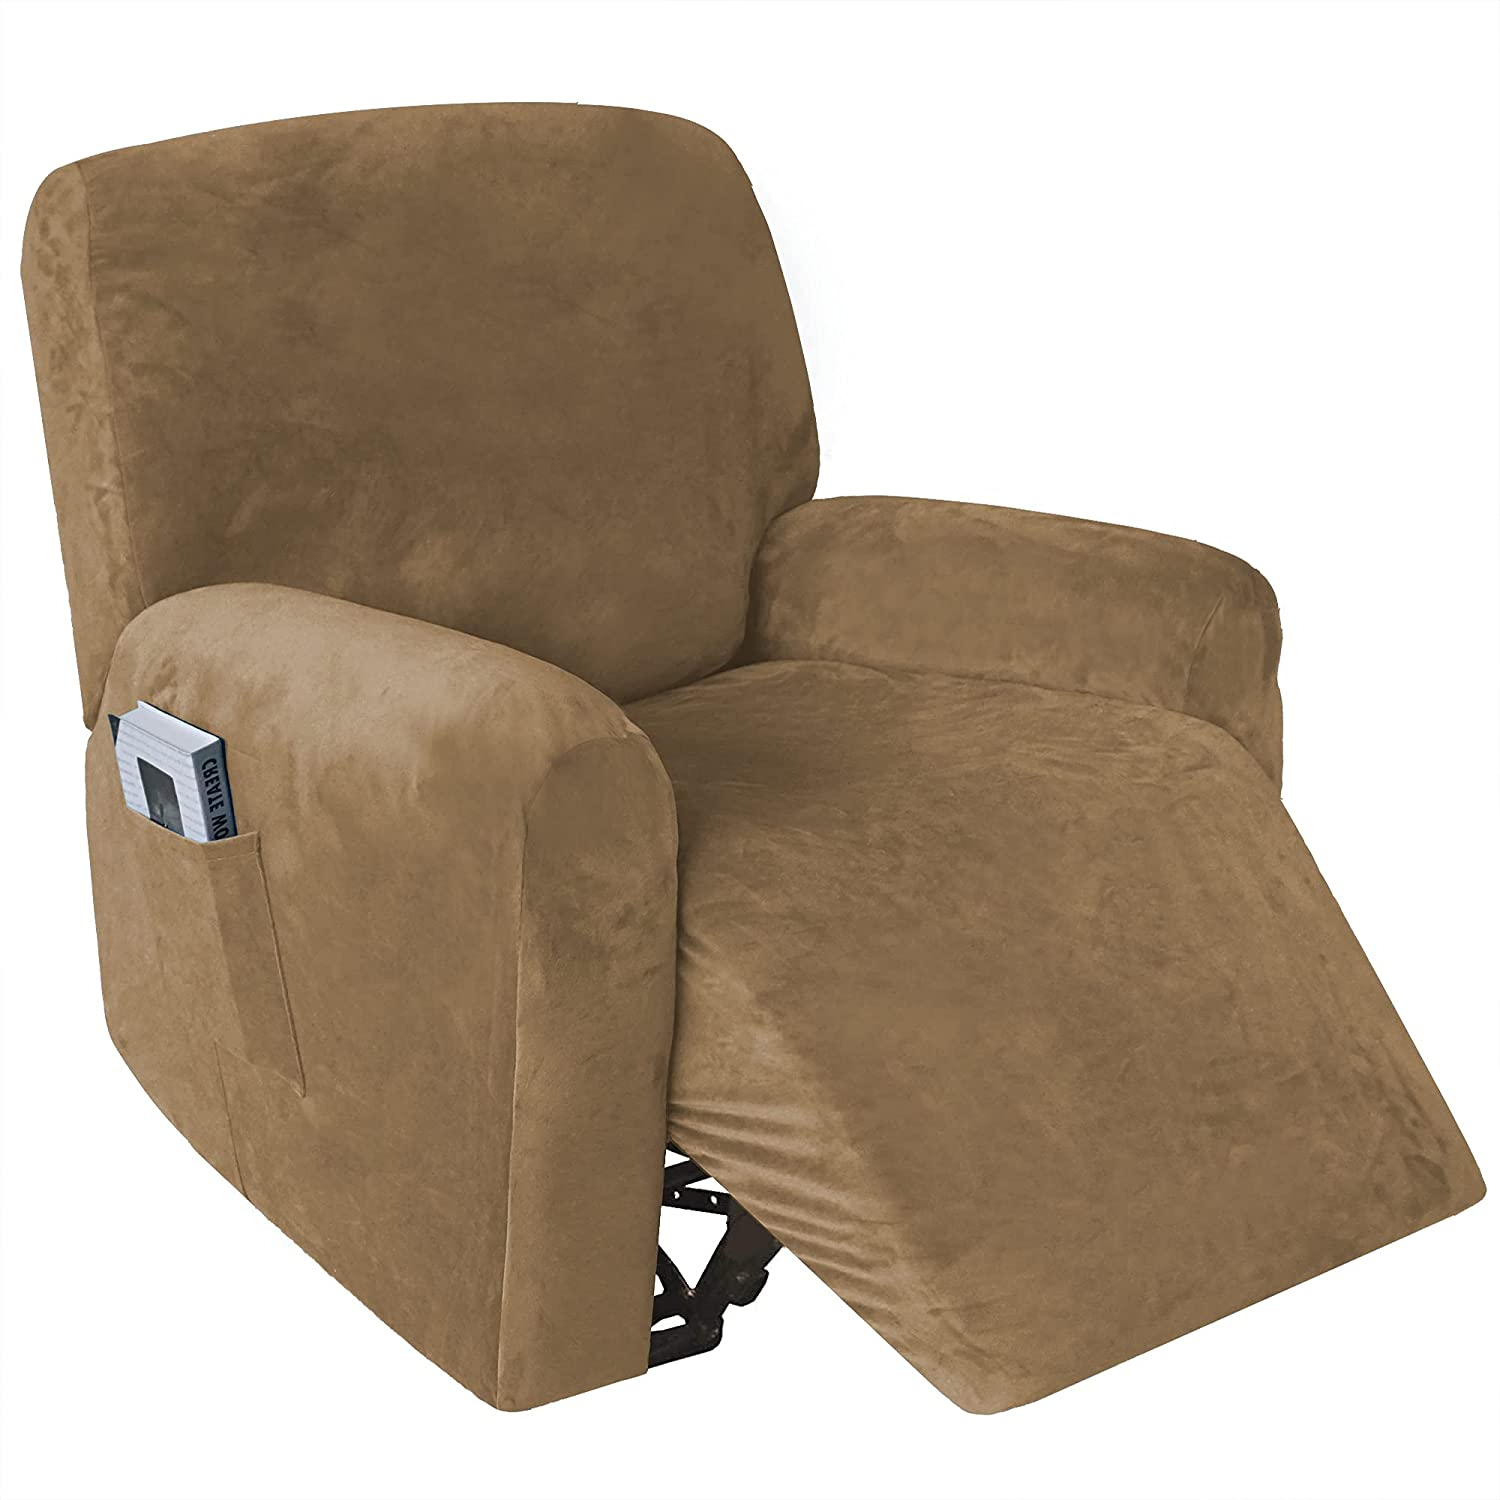 4 Limited time cheap sale Pieces Stretch Velvet Recliner Chair Max 44% OFF Lazy Covers Thick Soft